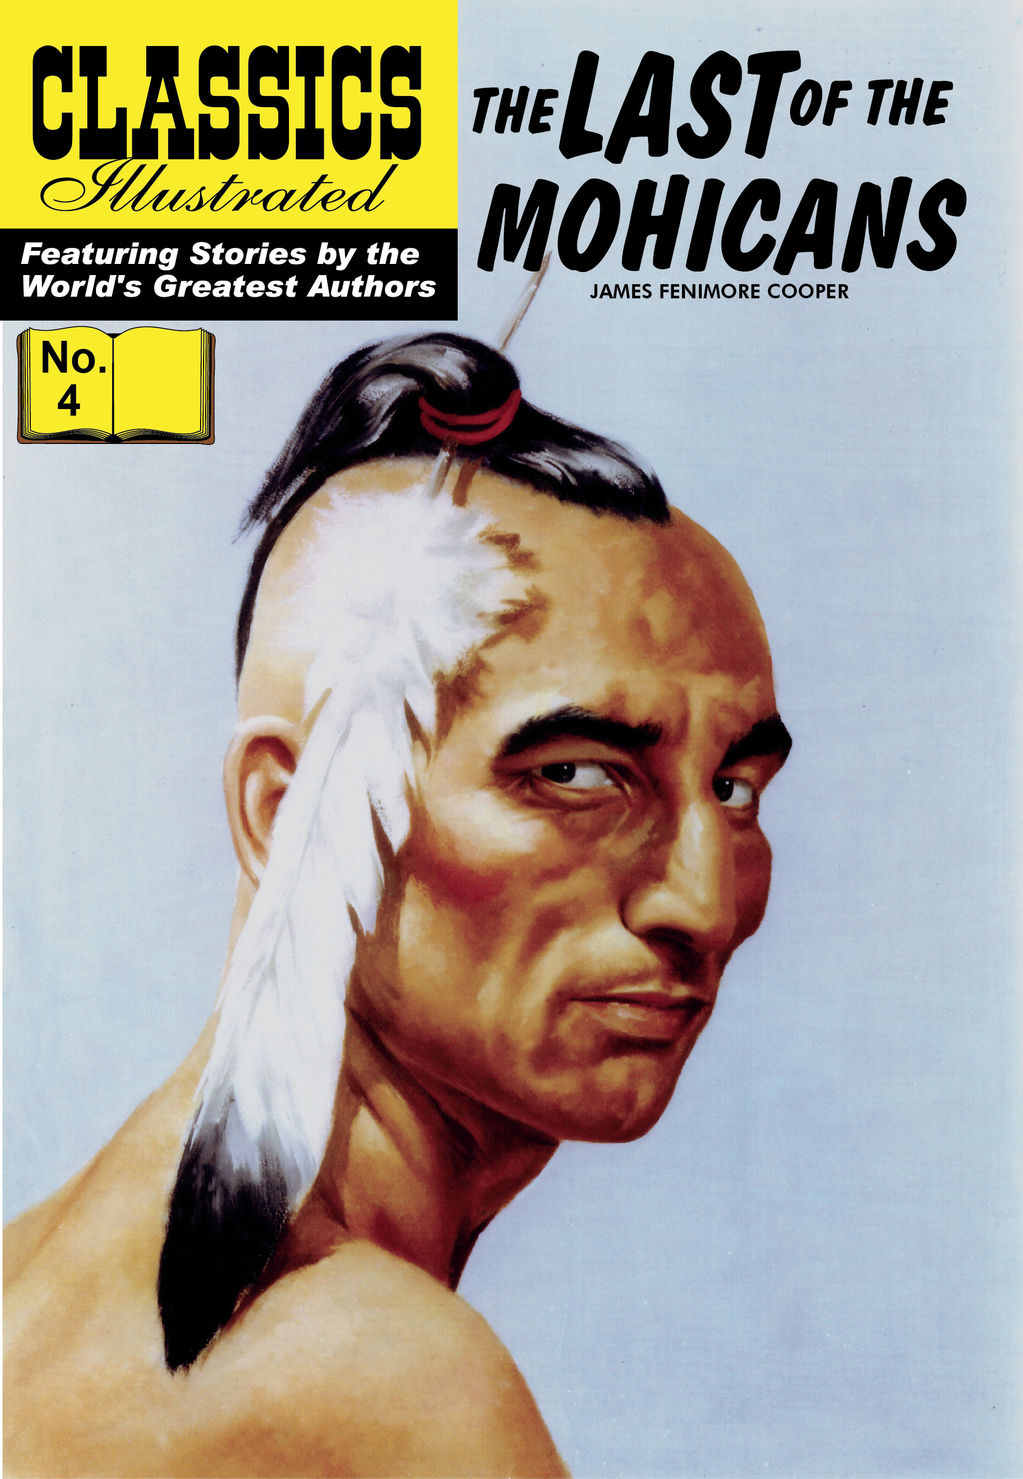 The Last of the Mohicans - Classics Illustrated #4